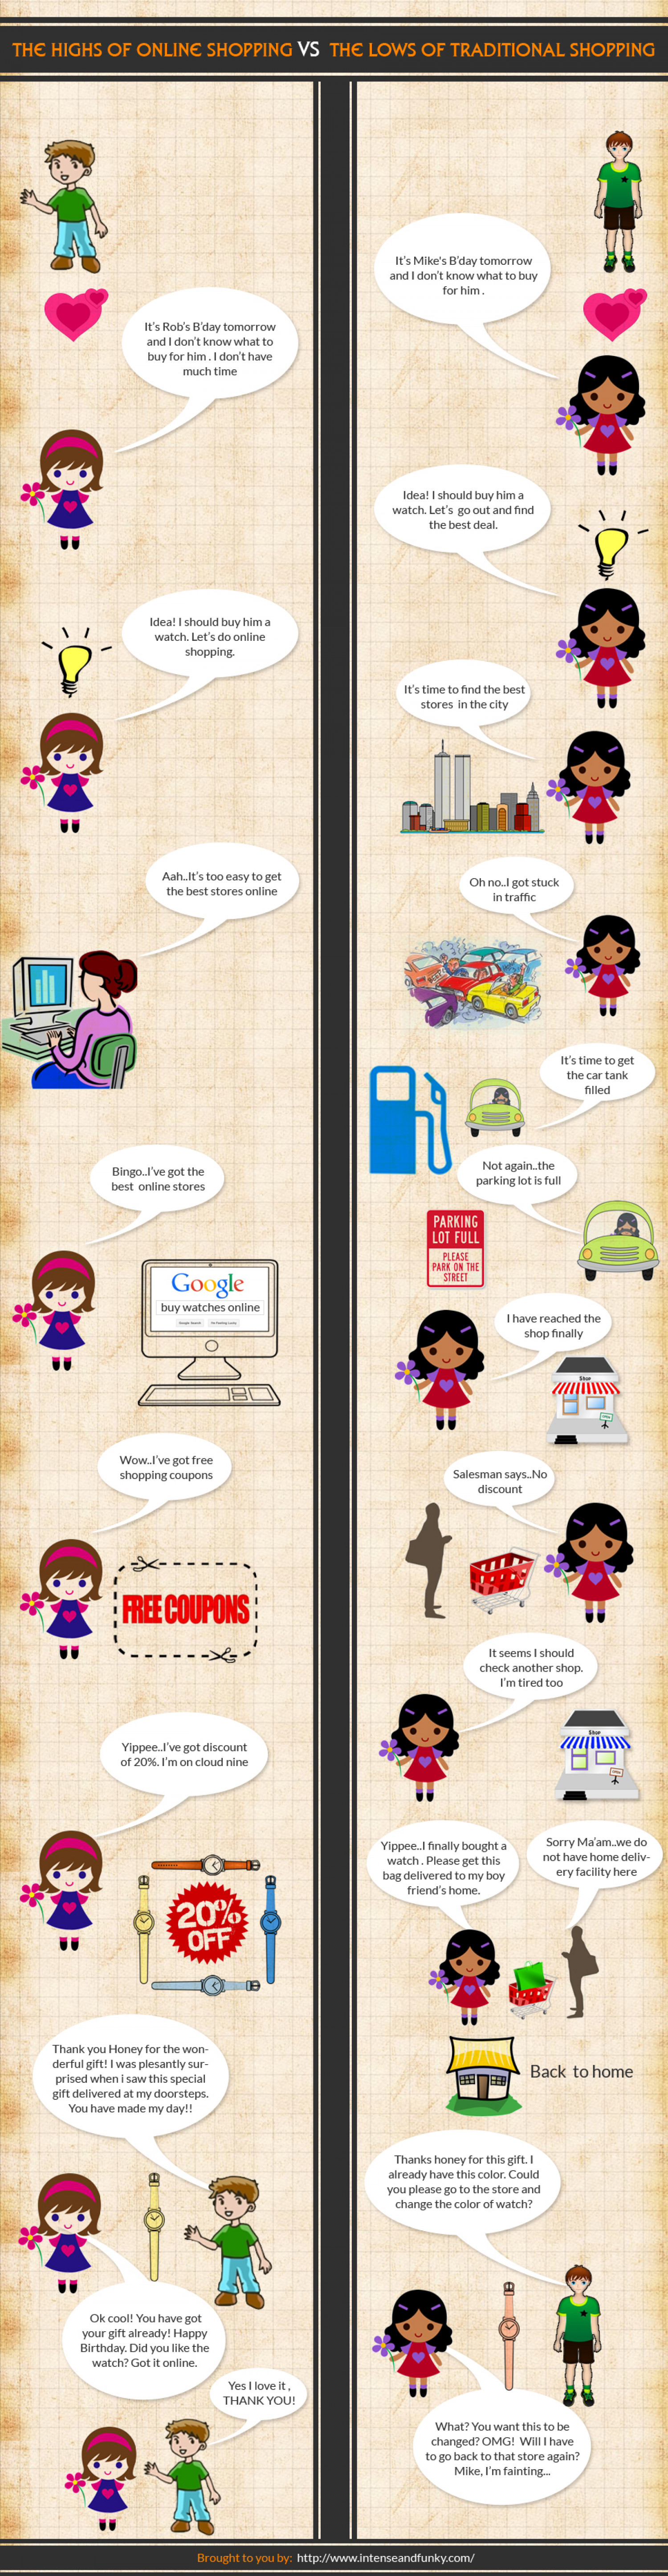 The Highs of Online Shopping VS The lows of traditional Shopping Infographic